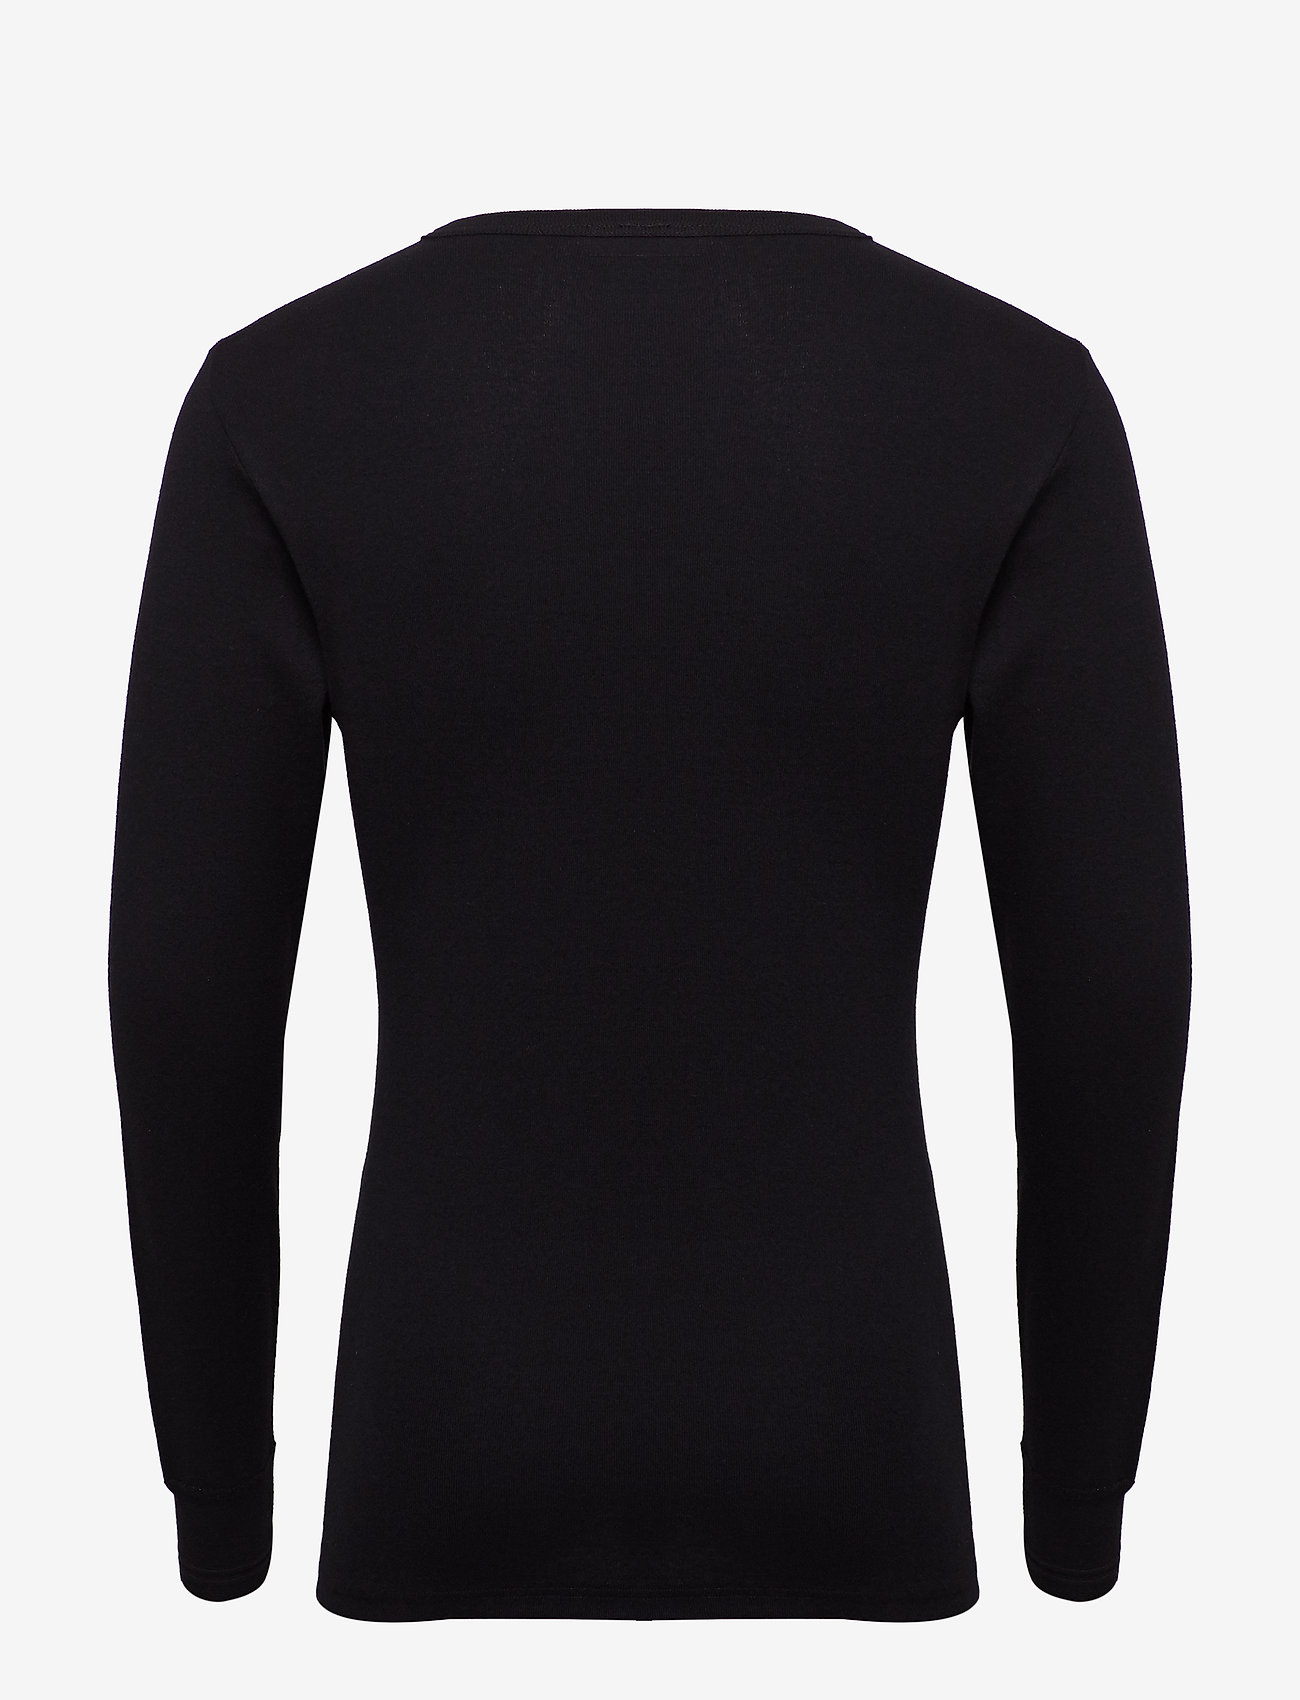 JBS - Original longsleeve - basic t-shirts - black - 1